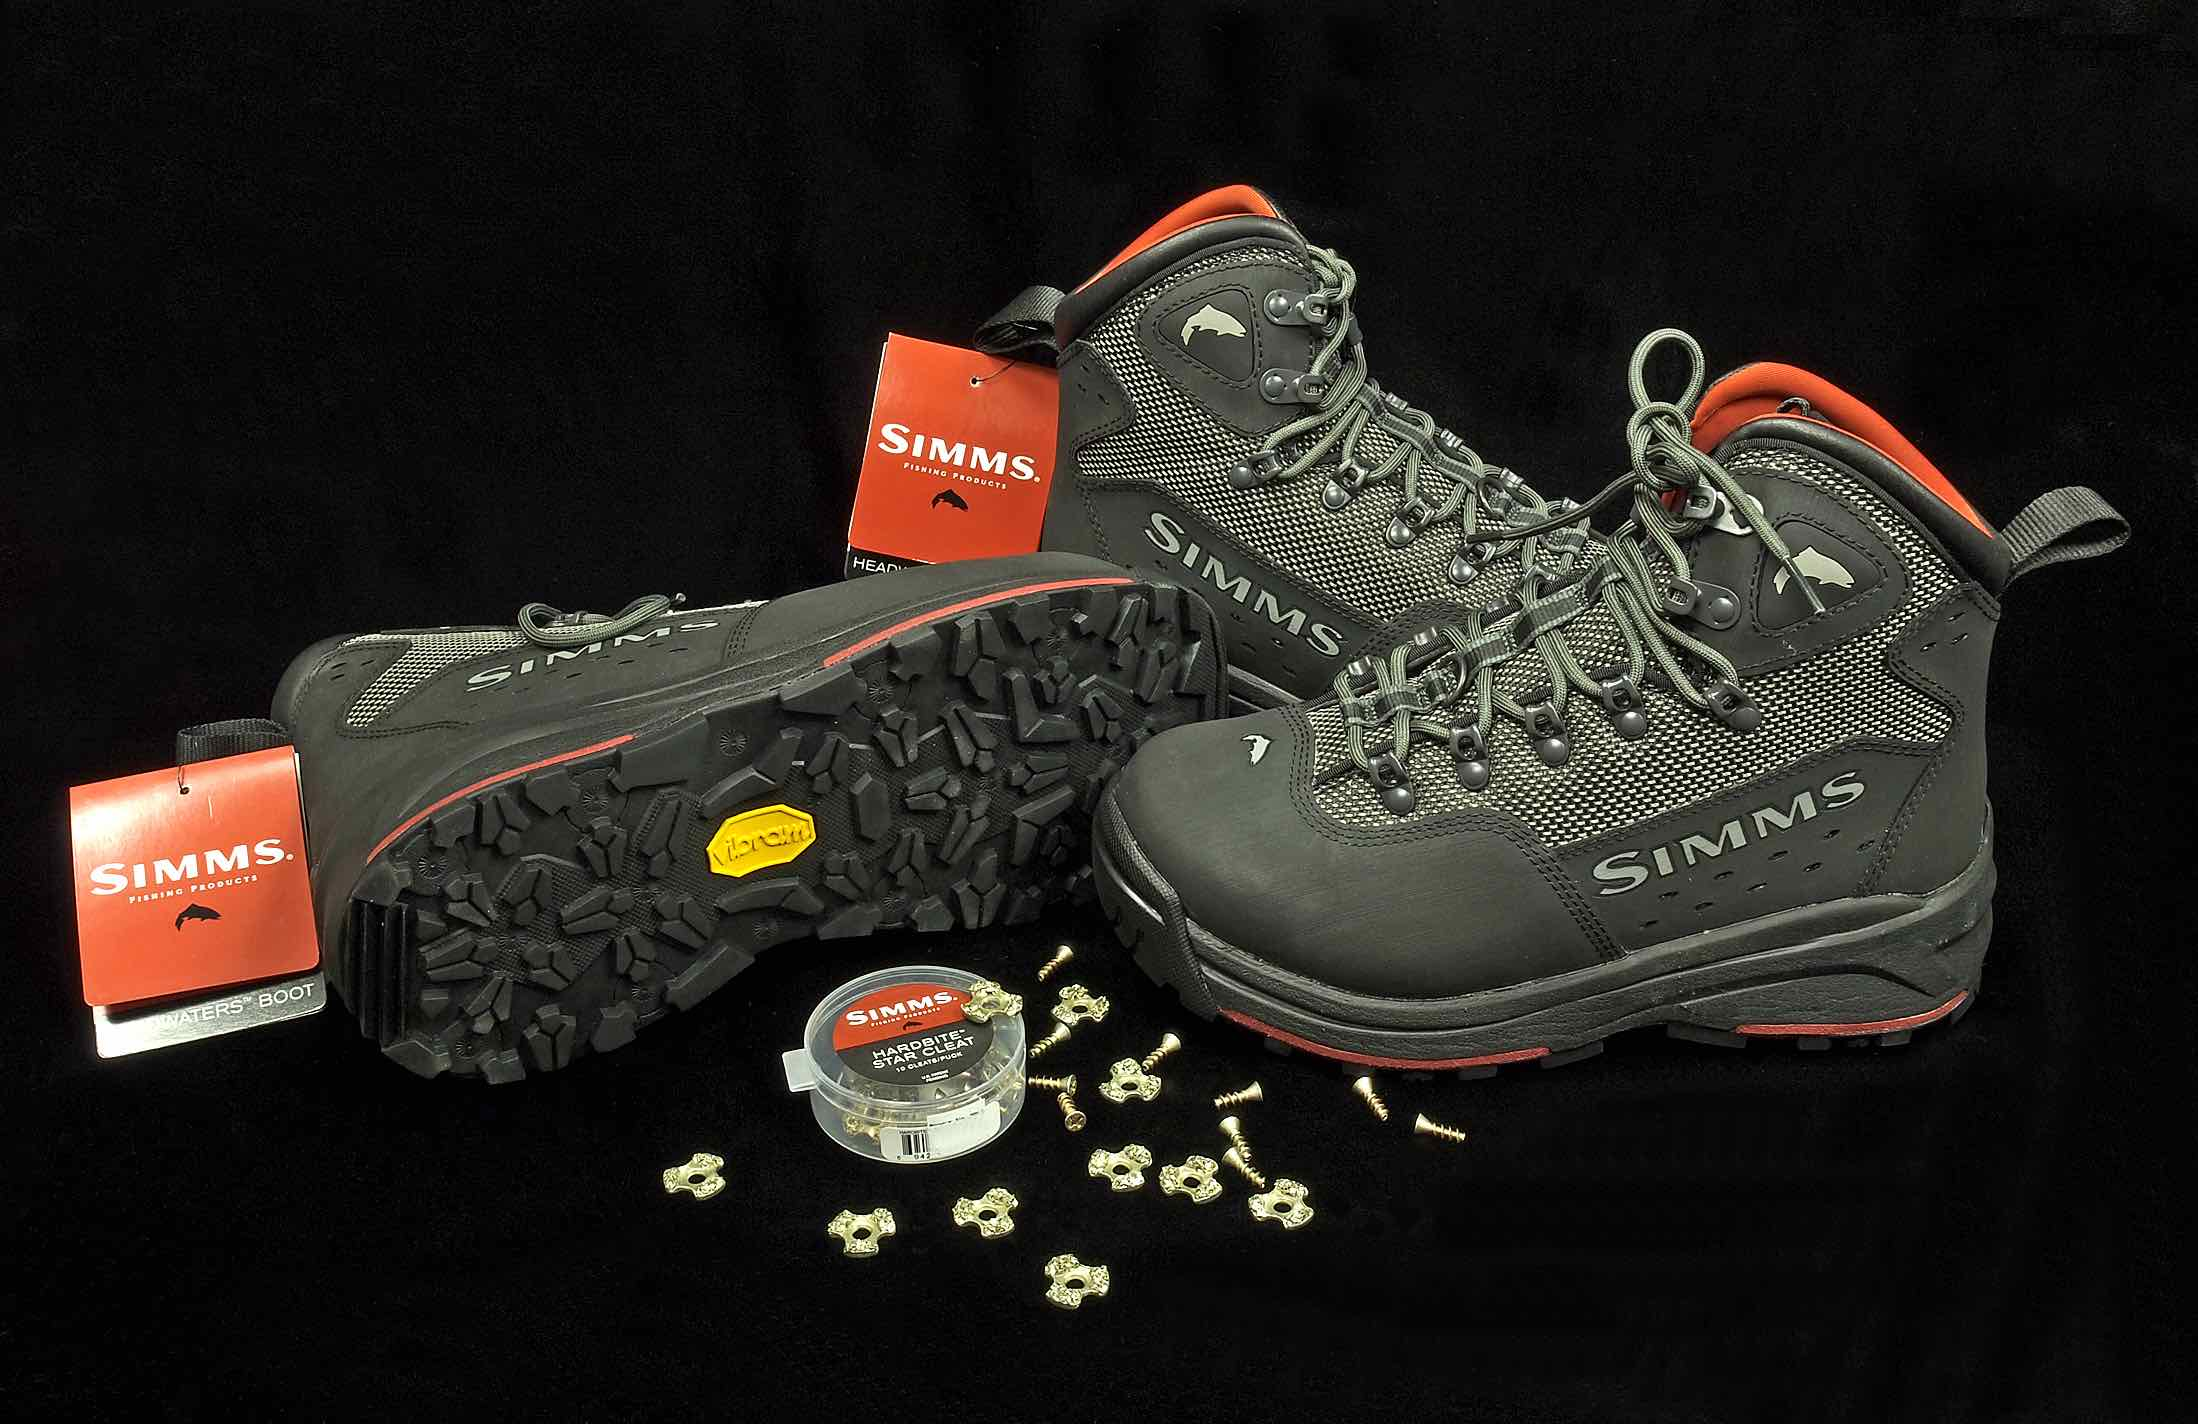 Simms Wading Boot Stud Amp Starbite Systems